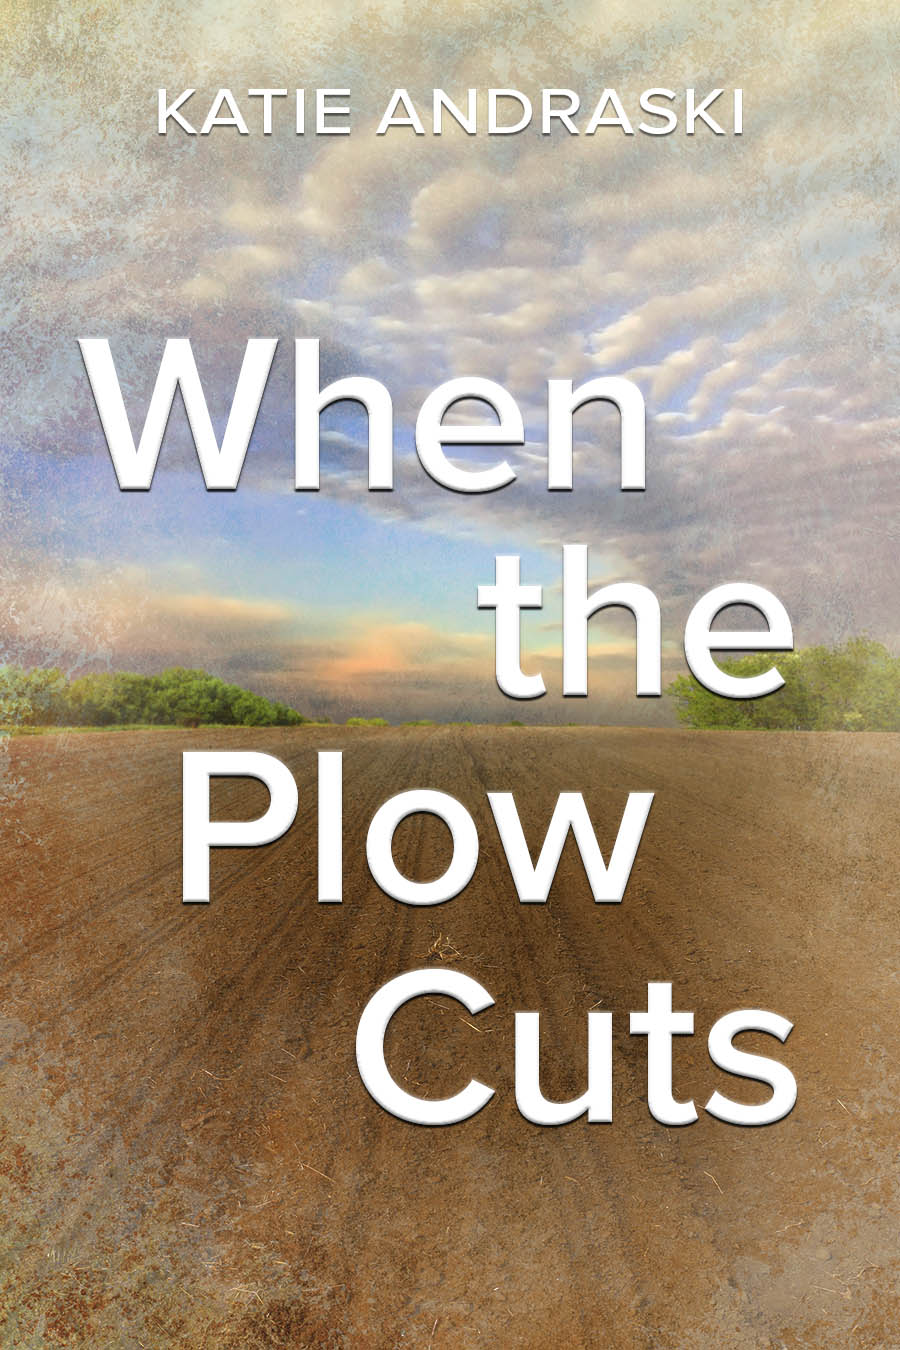 When the Plow Cuts by Katie Andraski Book Cover